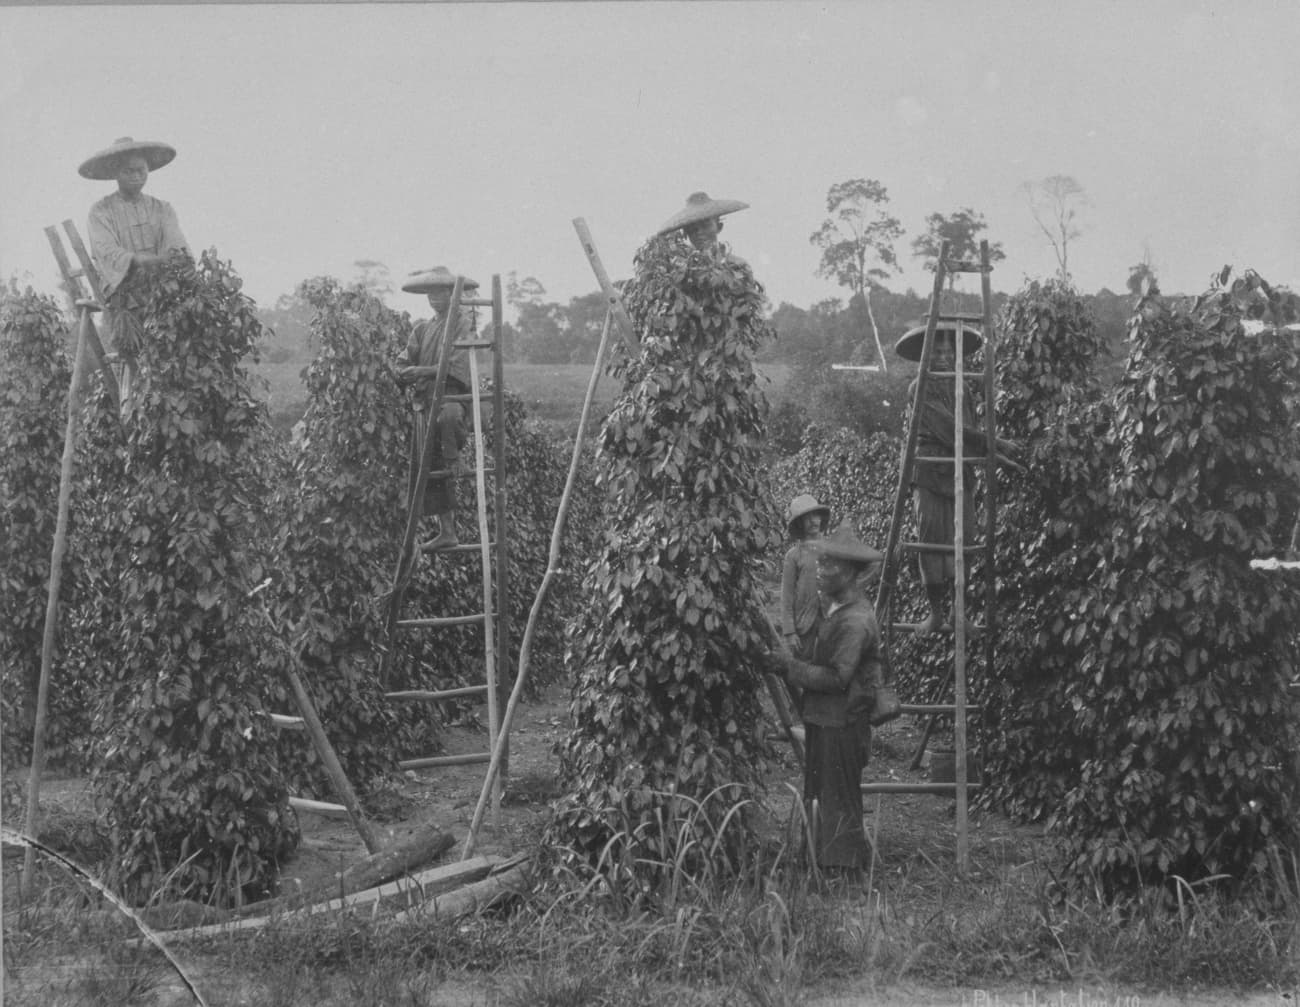 Workers at a pepper plantation, 1890s